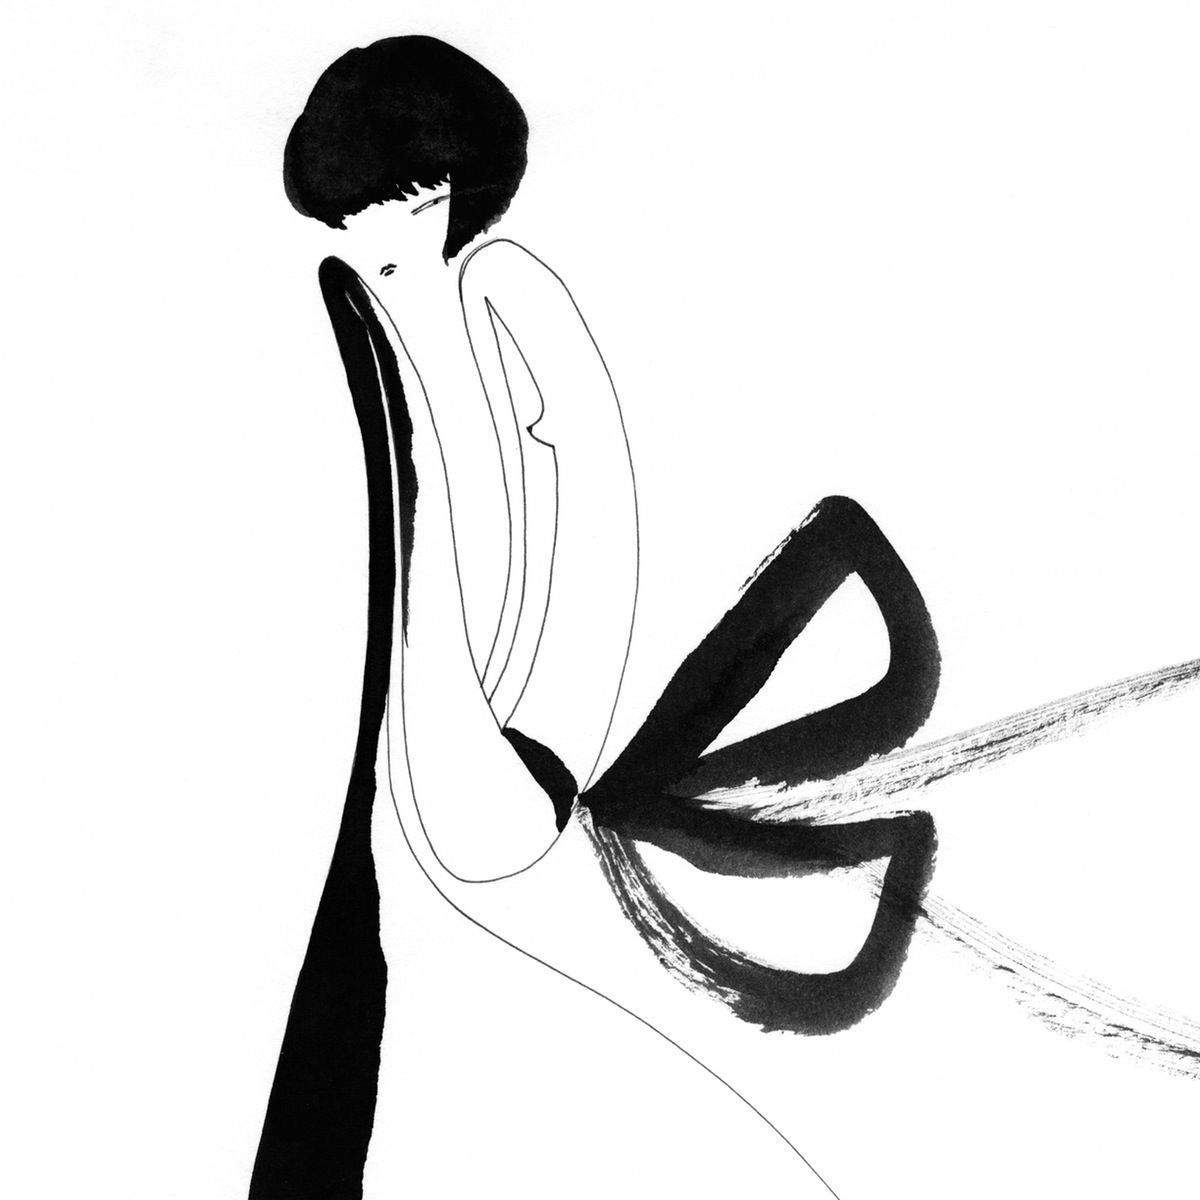 """""""Those Big Bow Days"""" - One Eye Girl  Using a """"one eye girl"""" as a muse, One Eye Girl, the artist alias used by Stephan Beaumont produces clean, graphic work that uses minimal line to capture the essence of the figure and expression."""